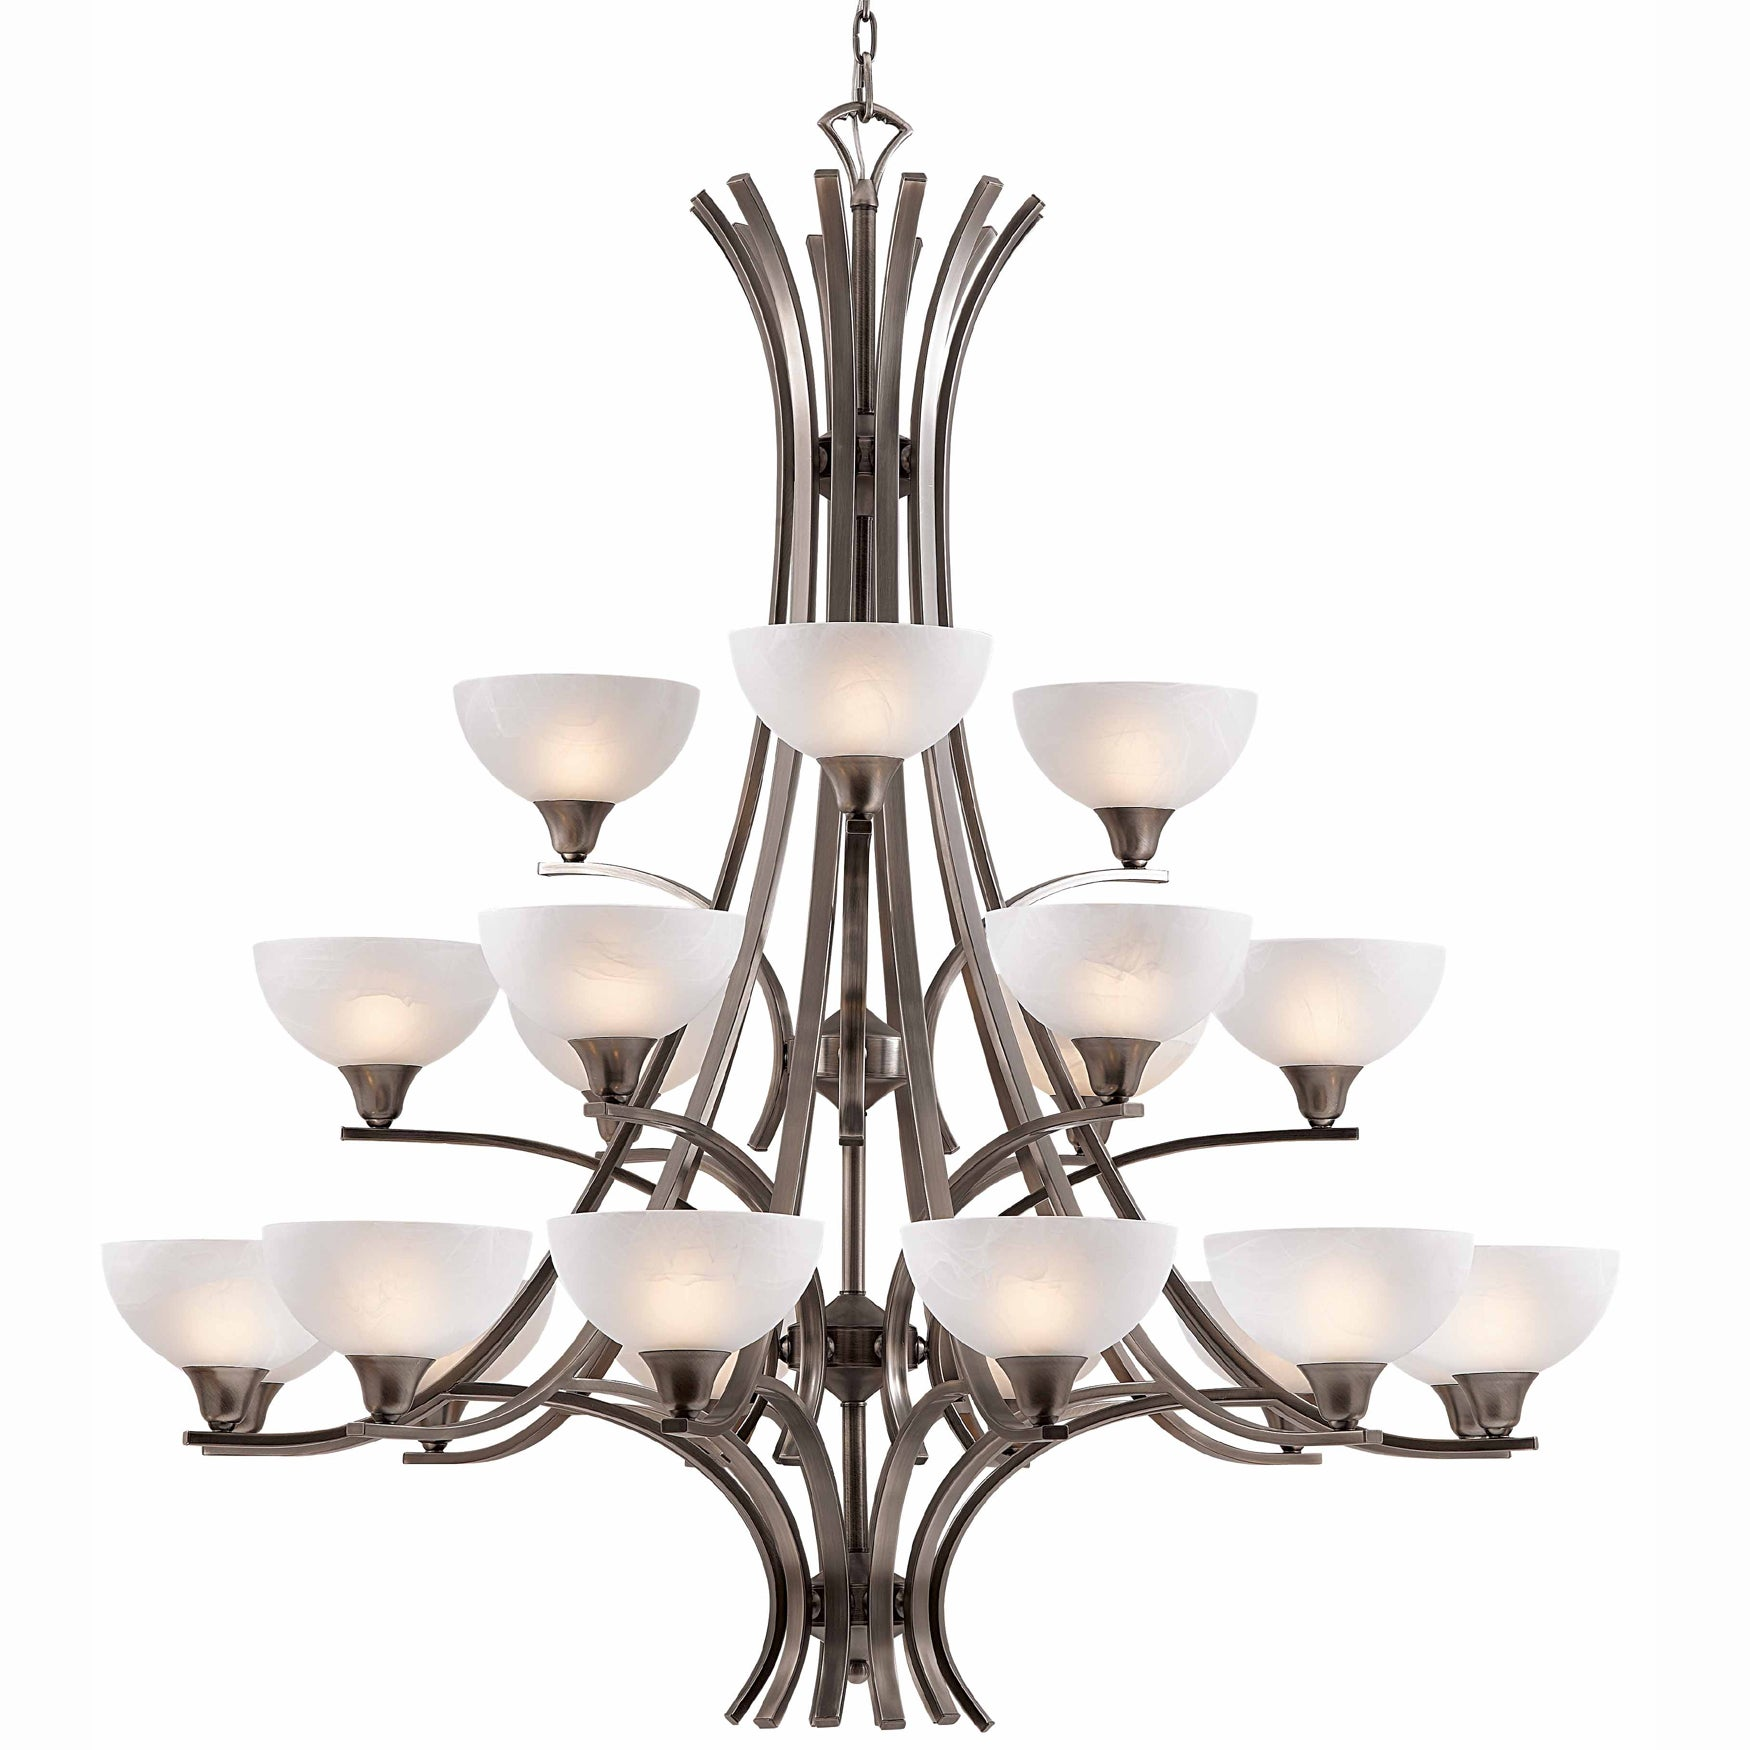 Luxor 21-light Antique Brushed Steel Chandelier